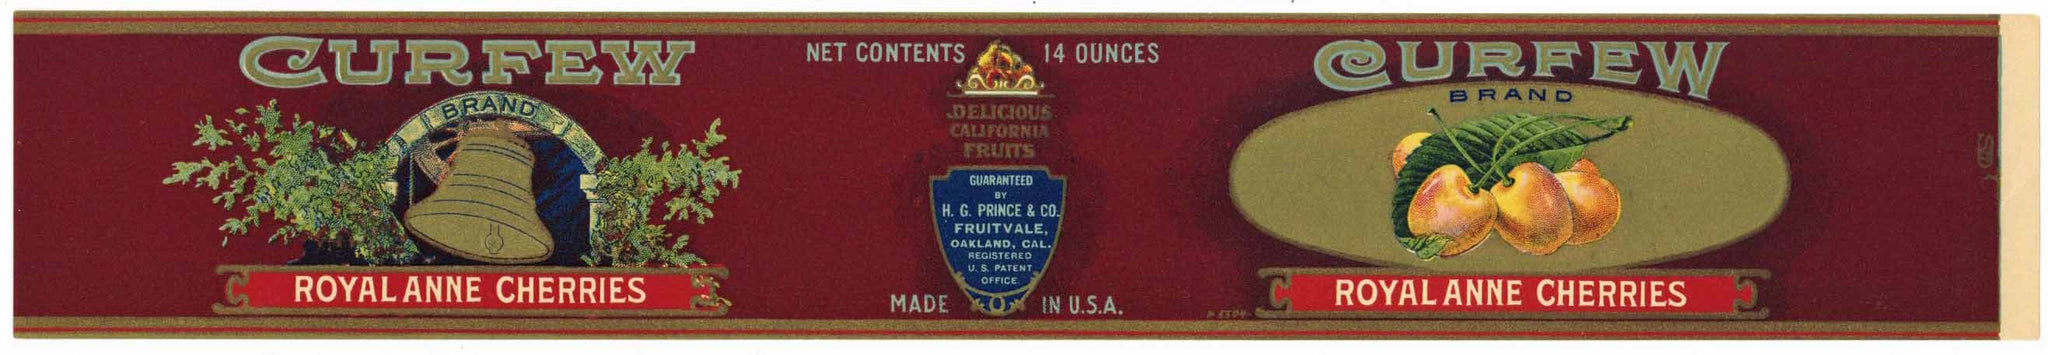 Curfew Brand Vintage Oakland Fruitvale Cherry Can Label